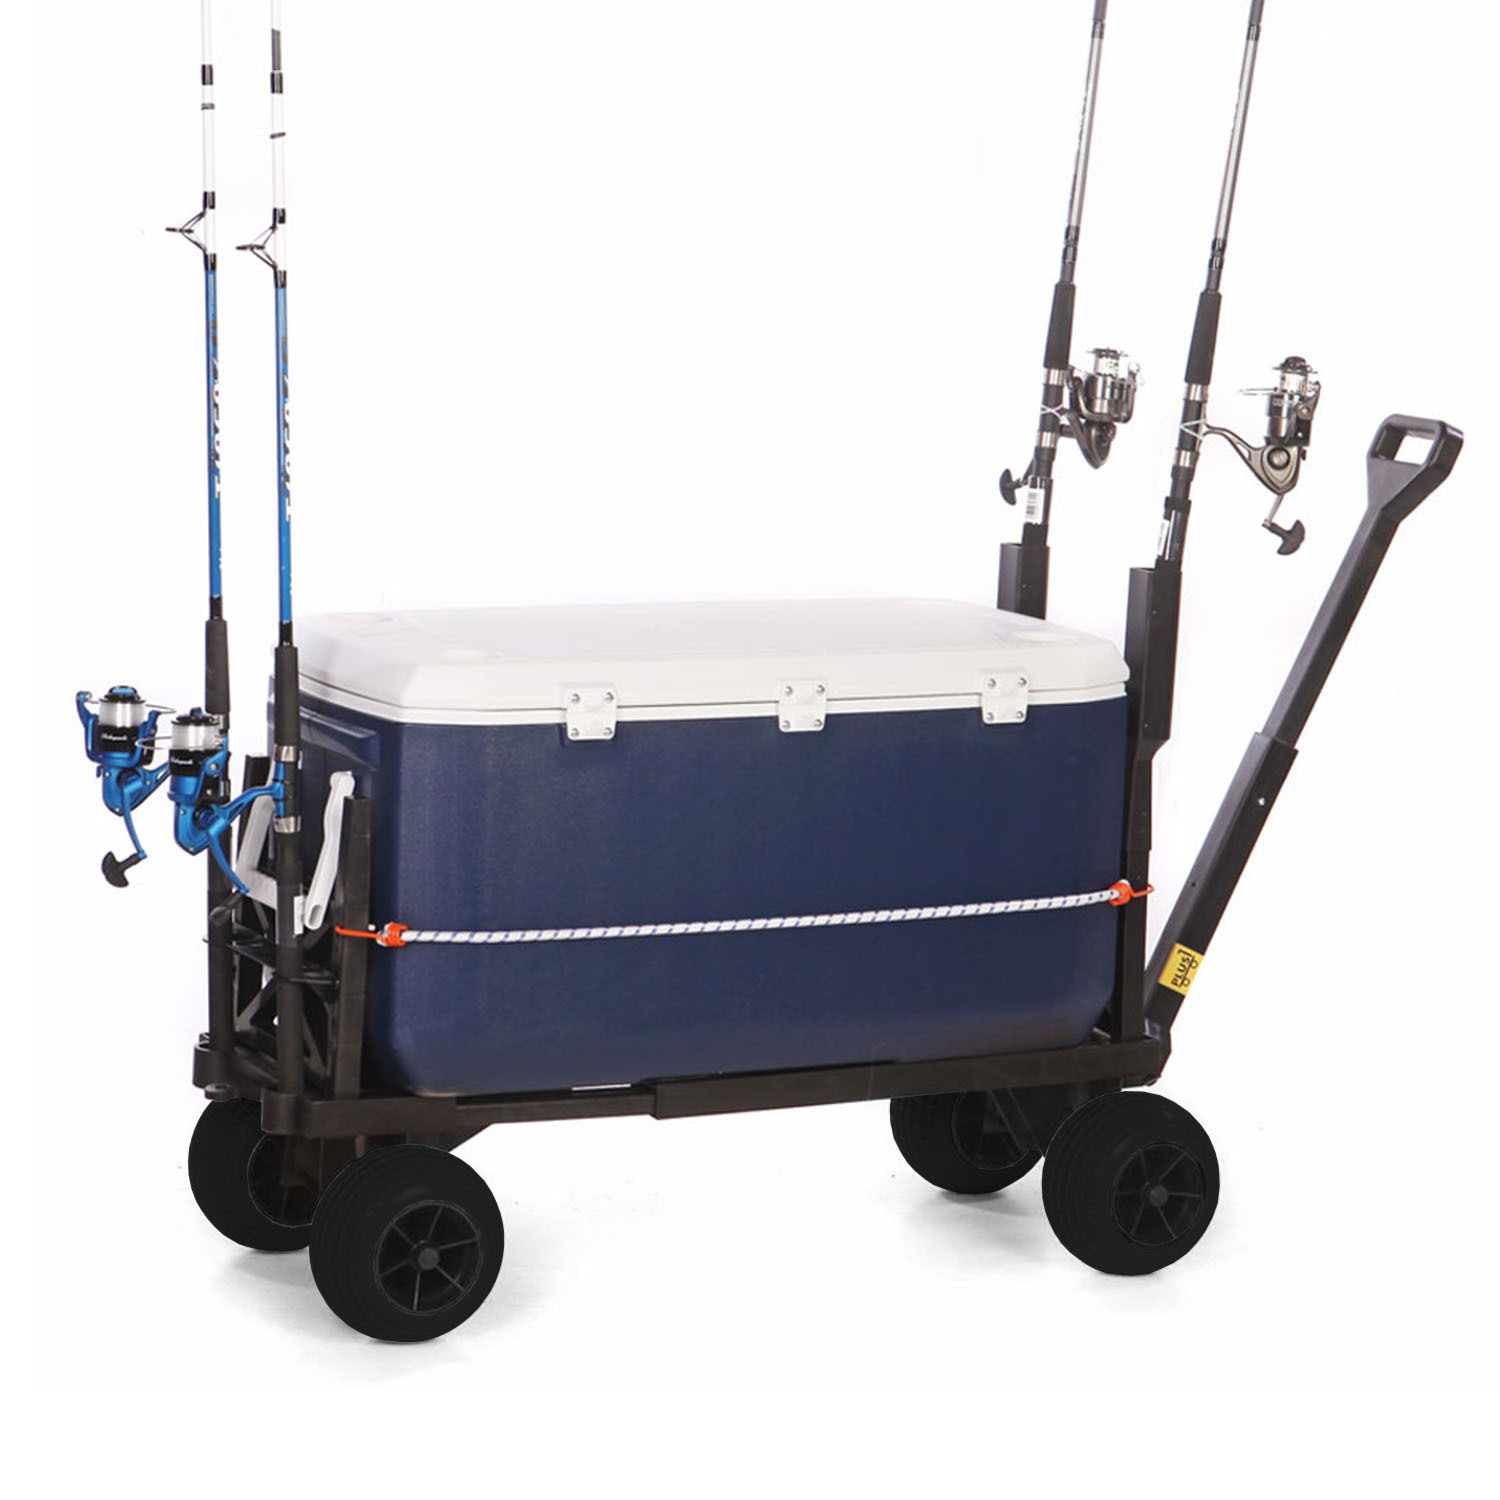 Surf Fishing Cart 4 Wheel Trolley Carts For The Beach